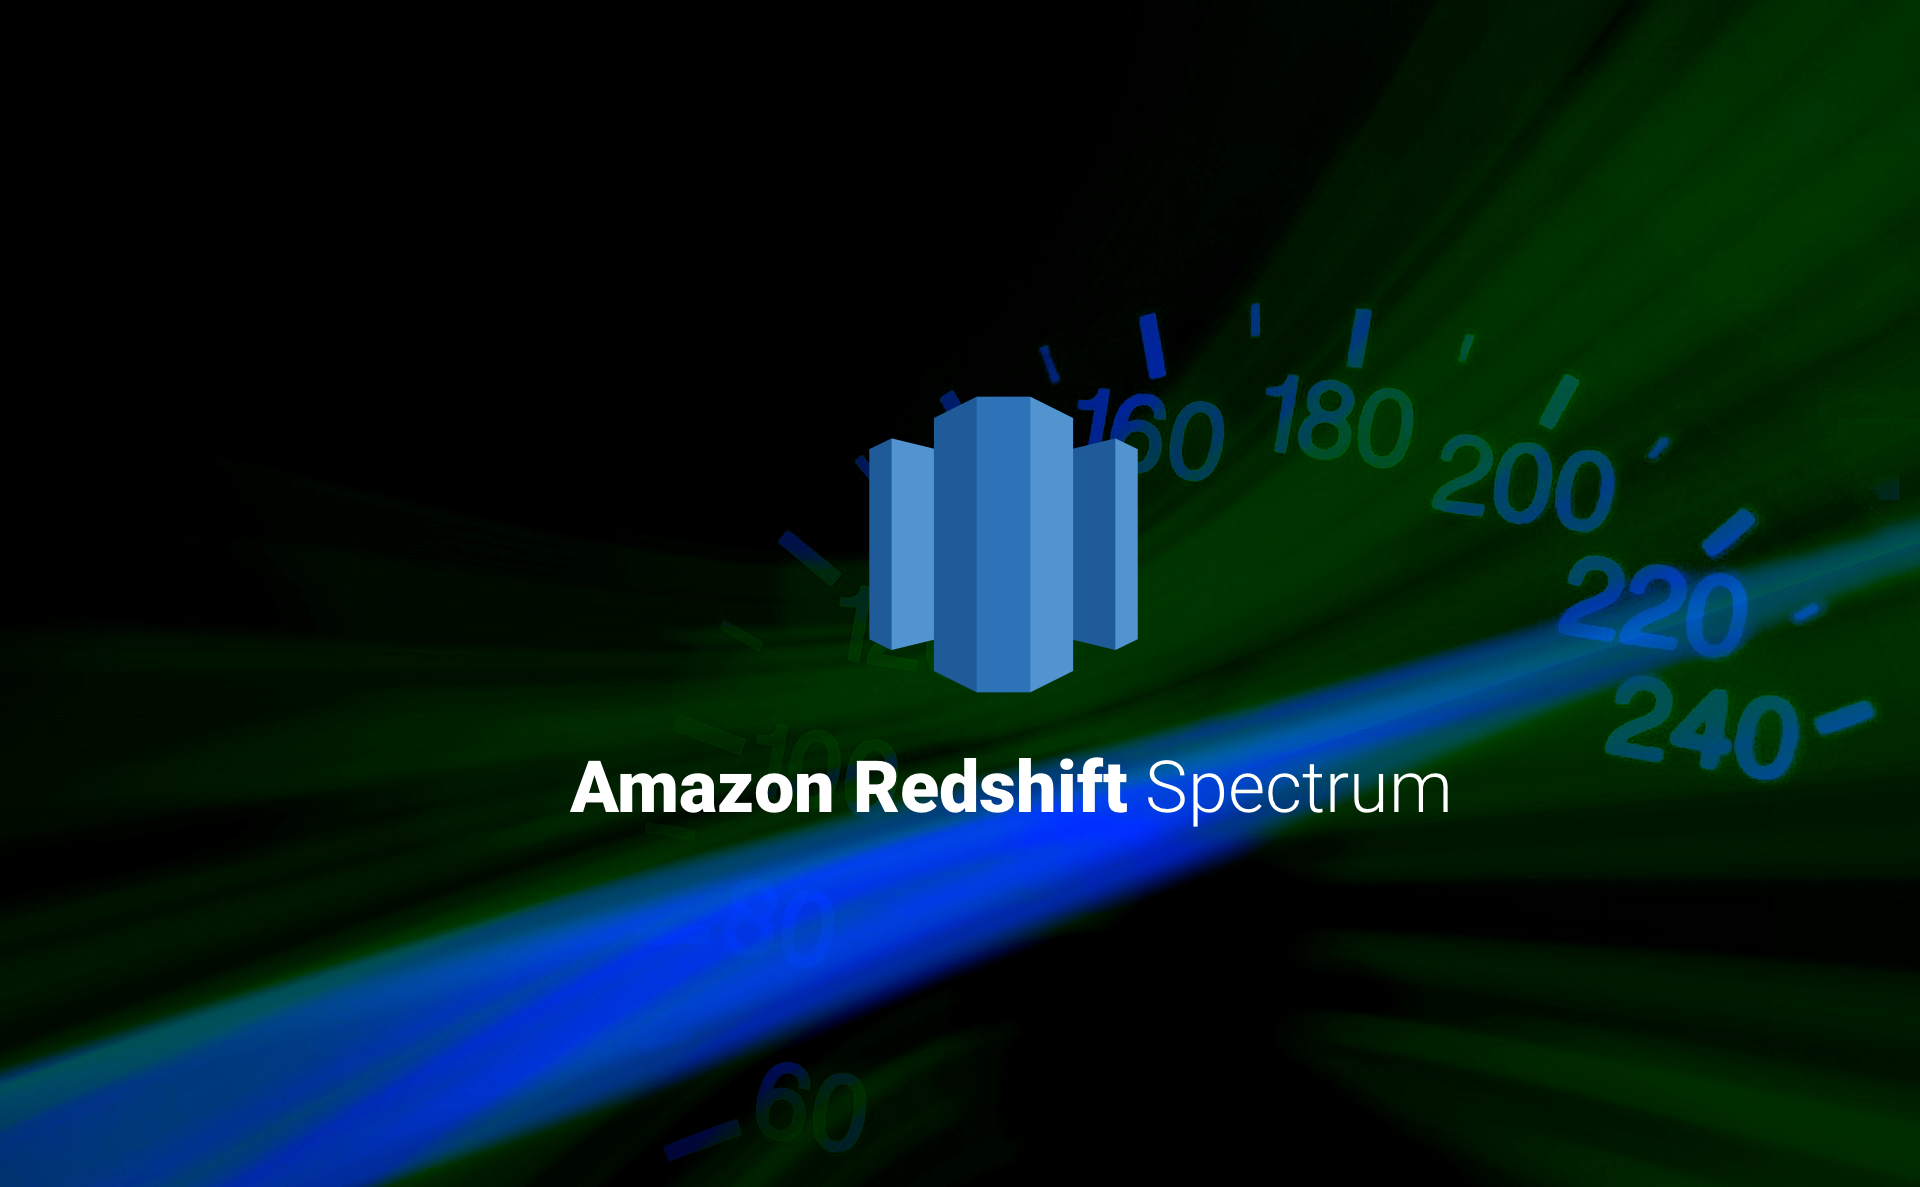 Introduction To Amazon Redshift Spectrum — Redefining